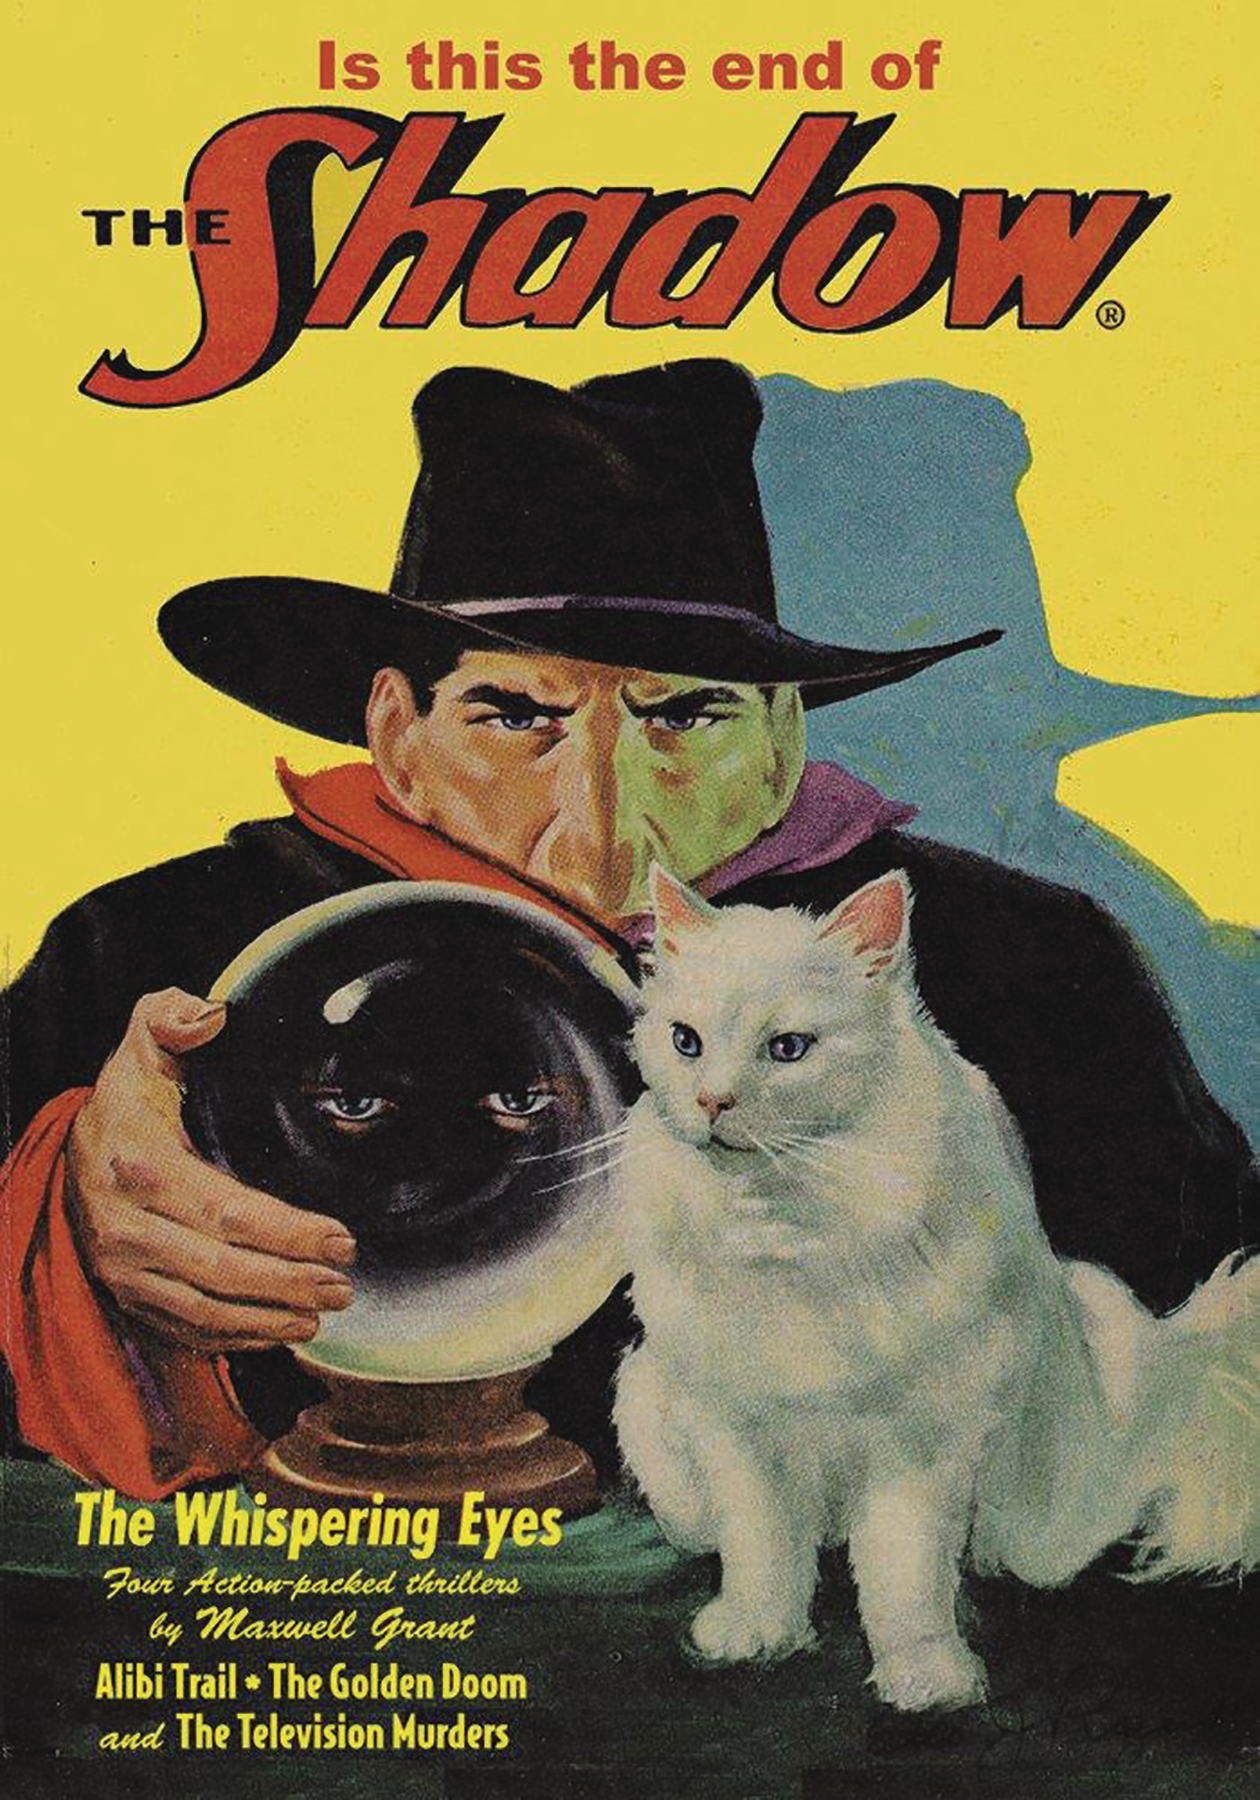 SHADOW NOVEL SC VOL 151 (OF 151) FINAL ISSUE SPECTACULAR